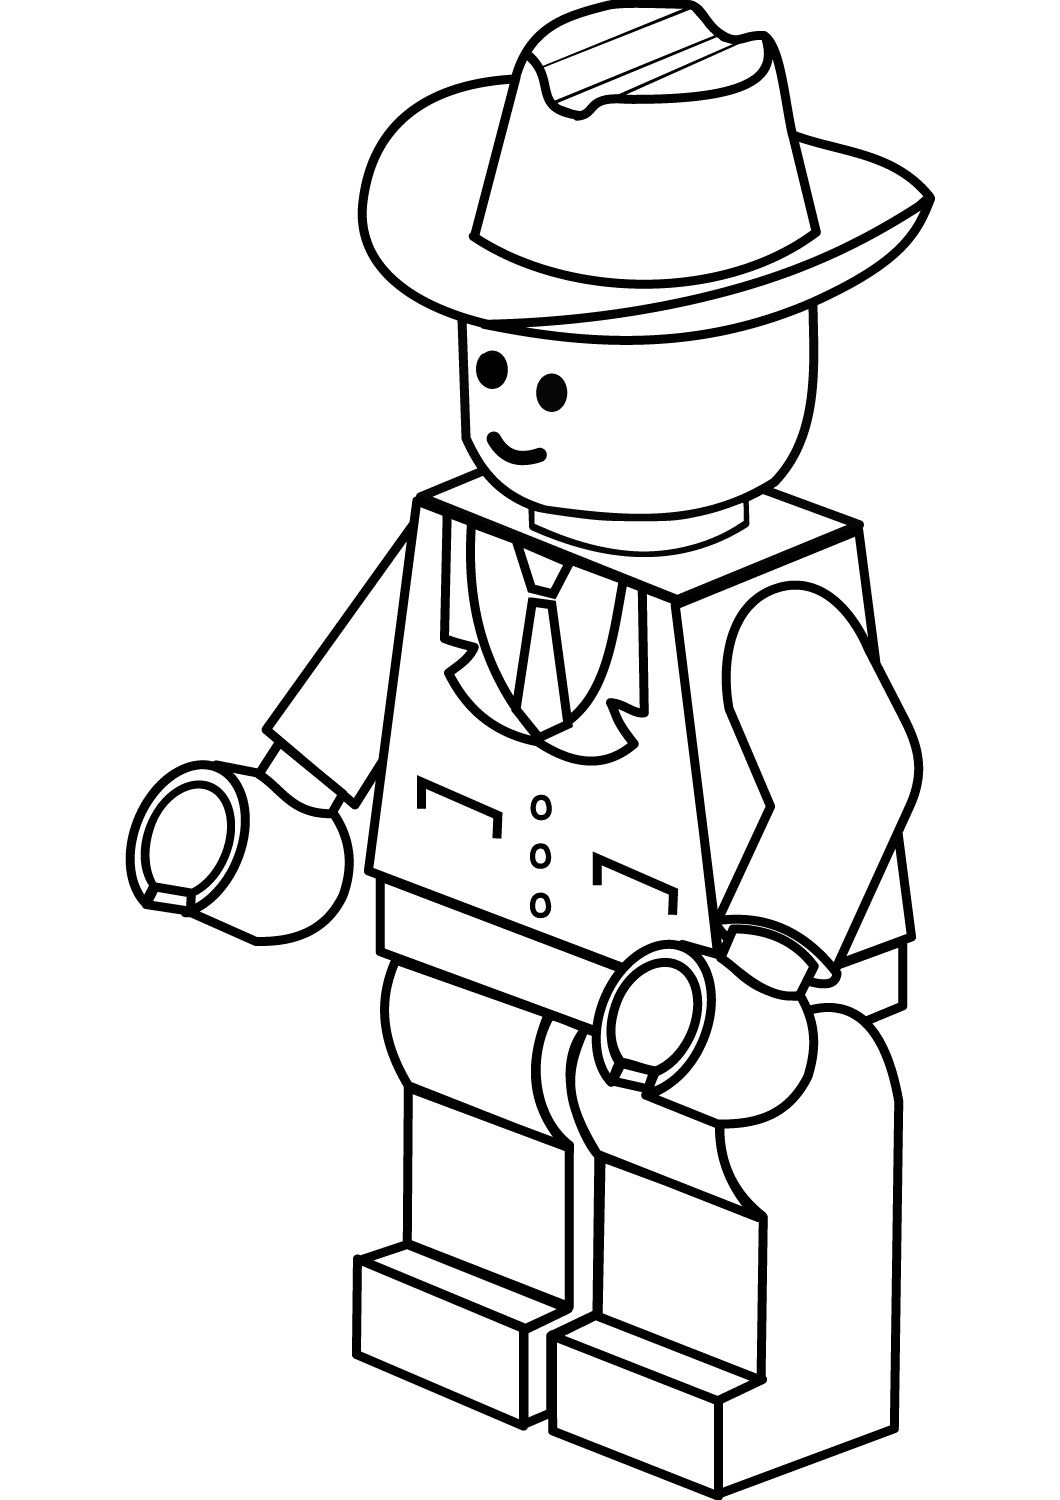 Lego City Cowboy Hat Coloring Page Free Coloring Pages Online In 2020 Lego Coloring Pages Lego Coloring Lego Coloring Sheet